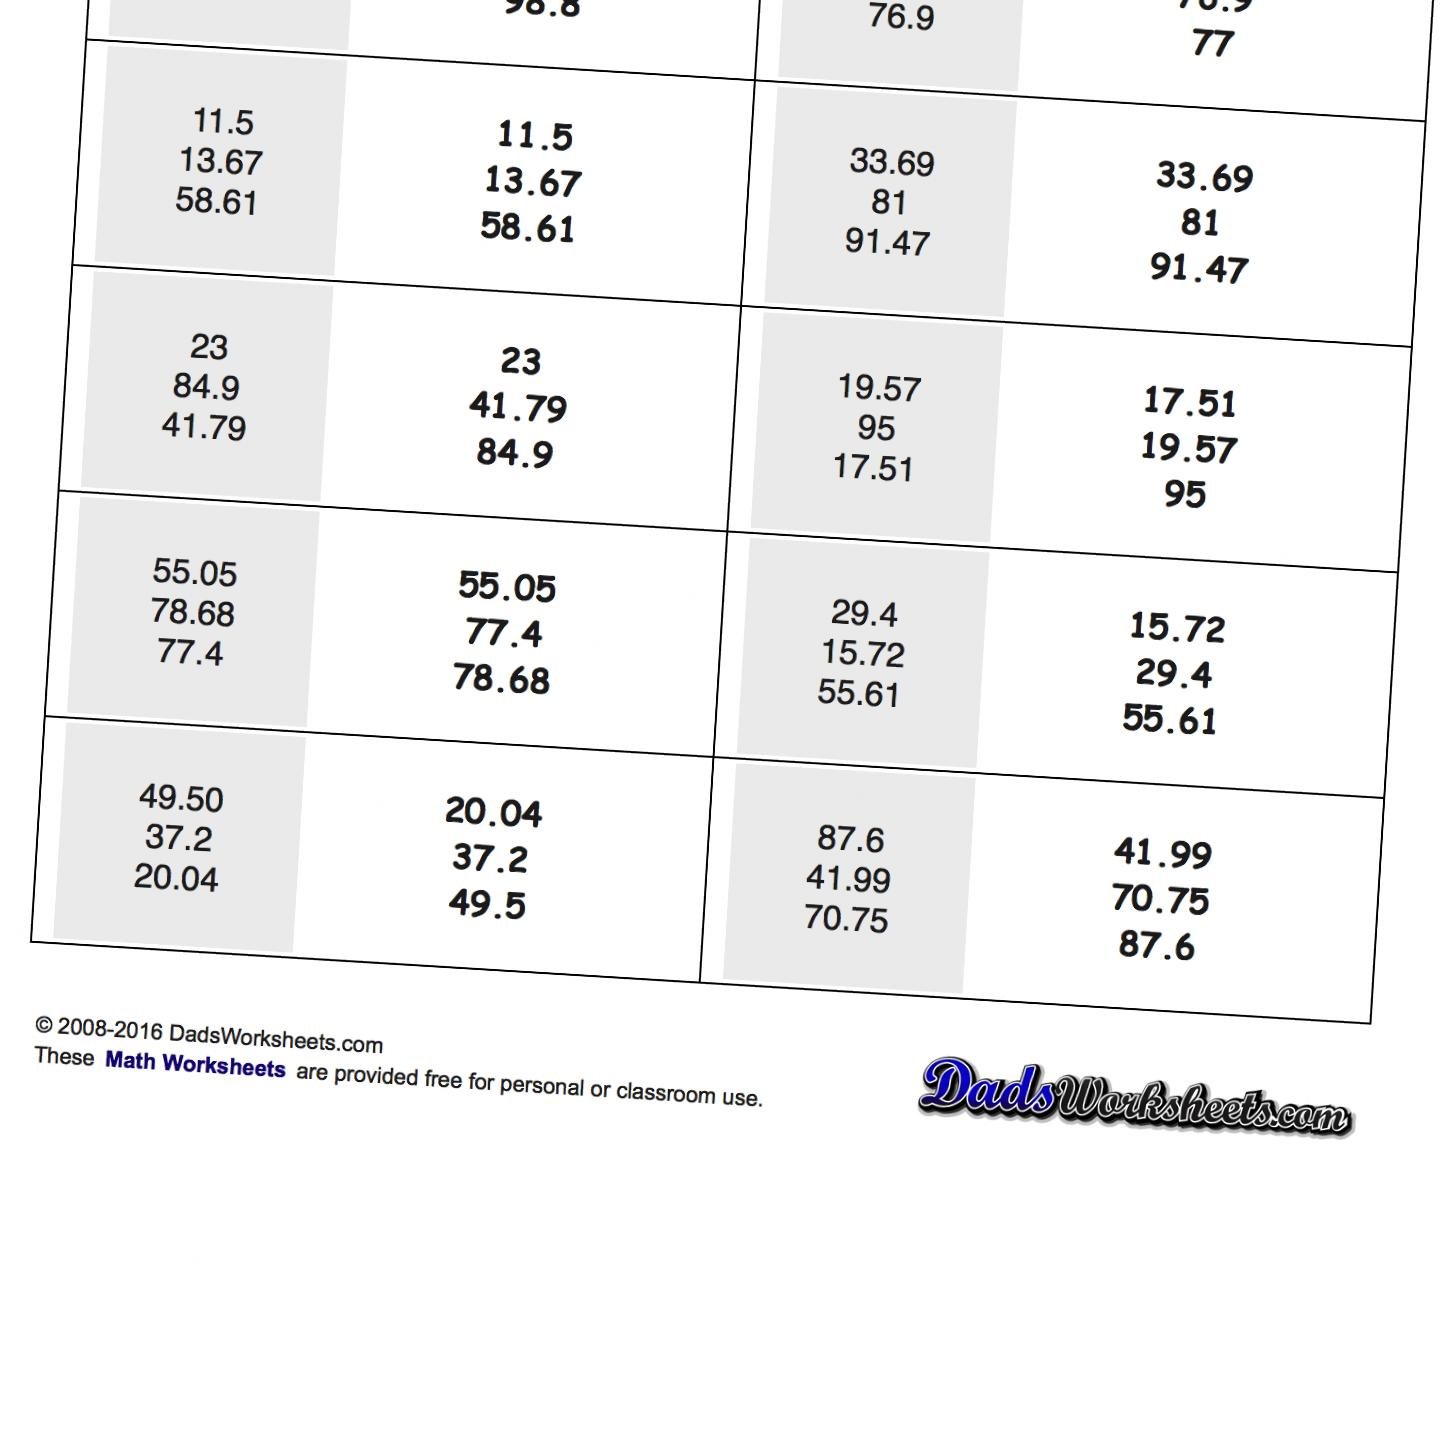 math worksheet : math worksheets place value ordering with decimals : Ordering Decimals From Least To Greatest Worksheet